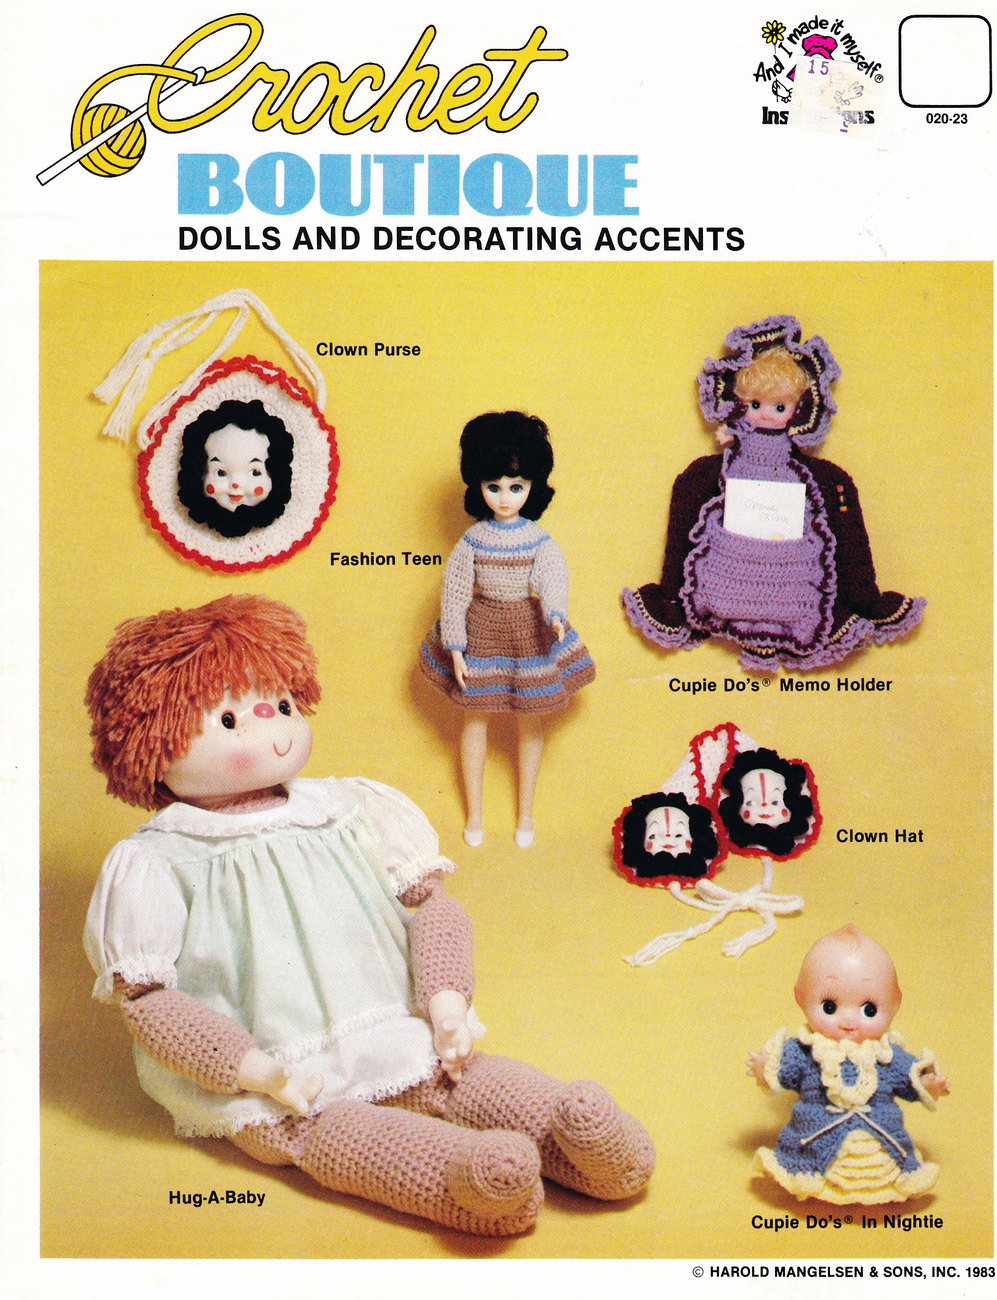 Primary image for CROCHET BOUTIQUE DOLLS & DECORATING ACCENTS FASHION TEEN